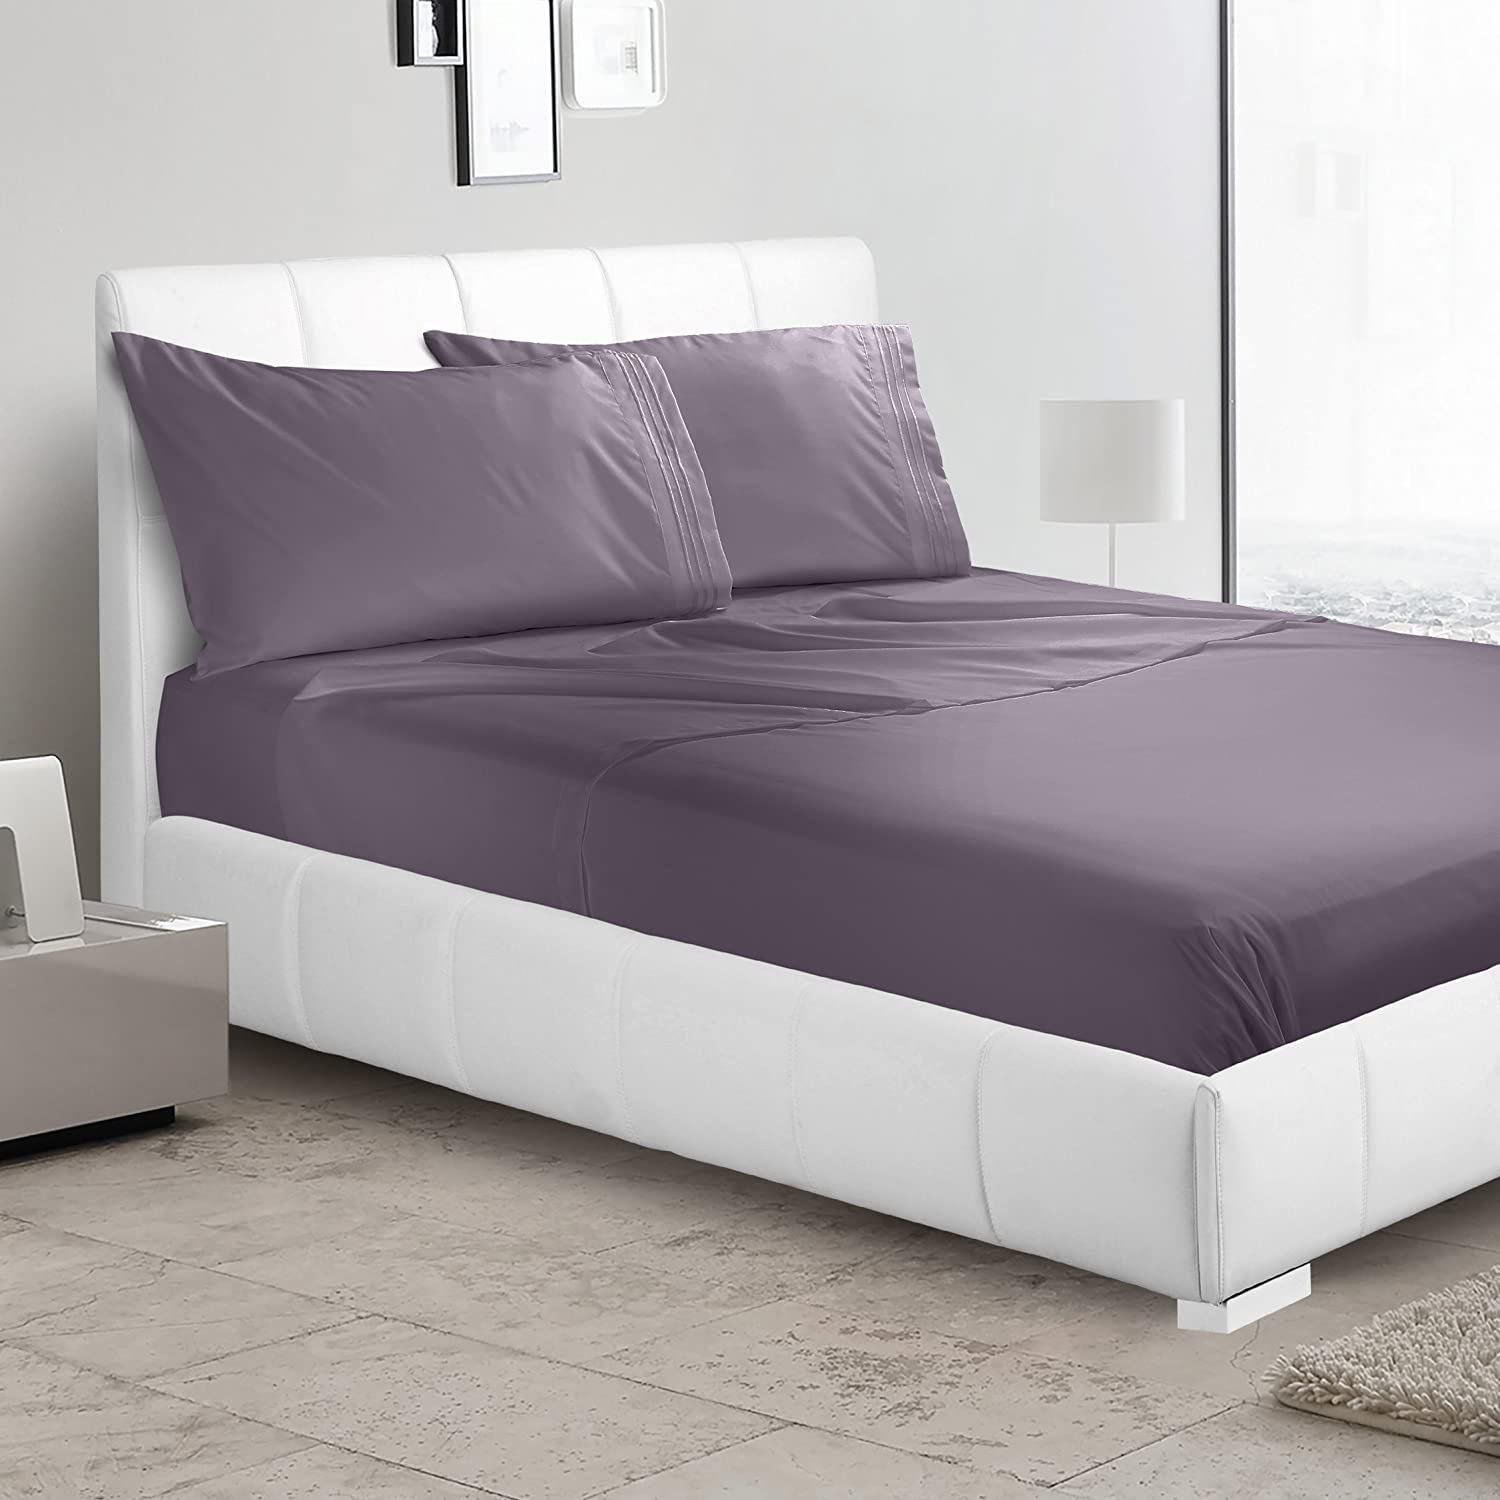 Ultra Soft Luxurious 4-Piece Bed Sheet Set, King, Eggplant-Purple